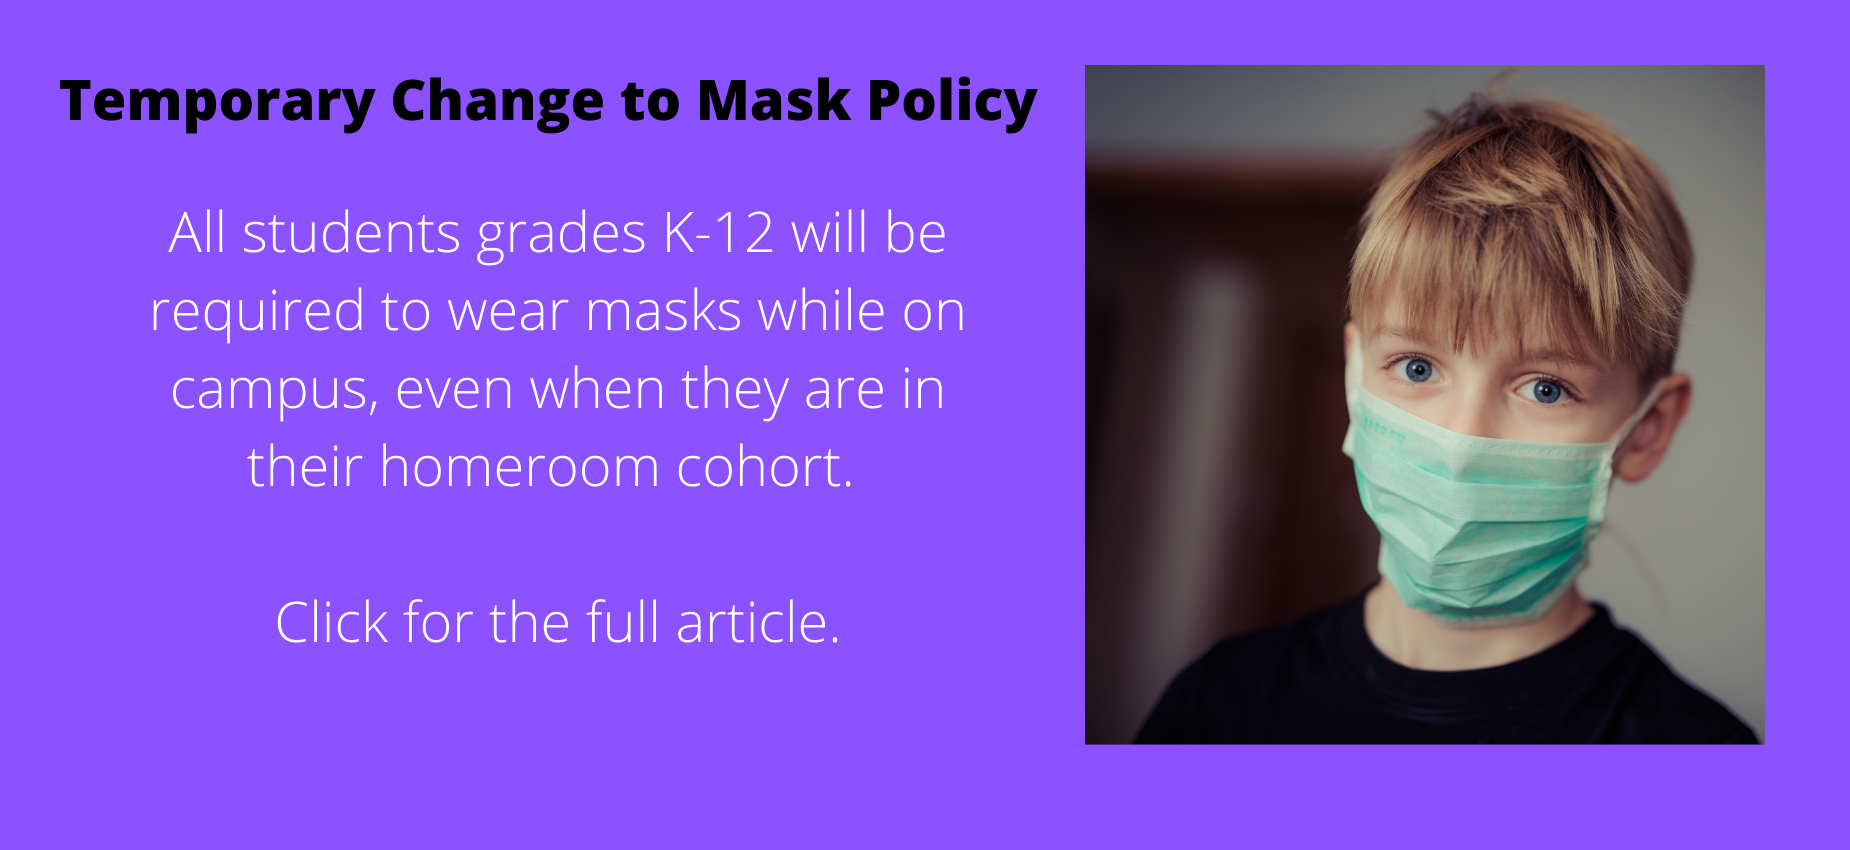 Temporary Change to Mask Policy